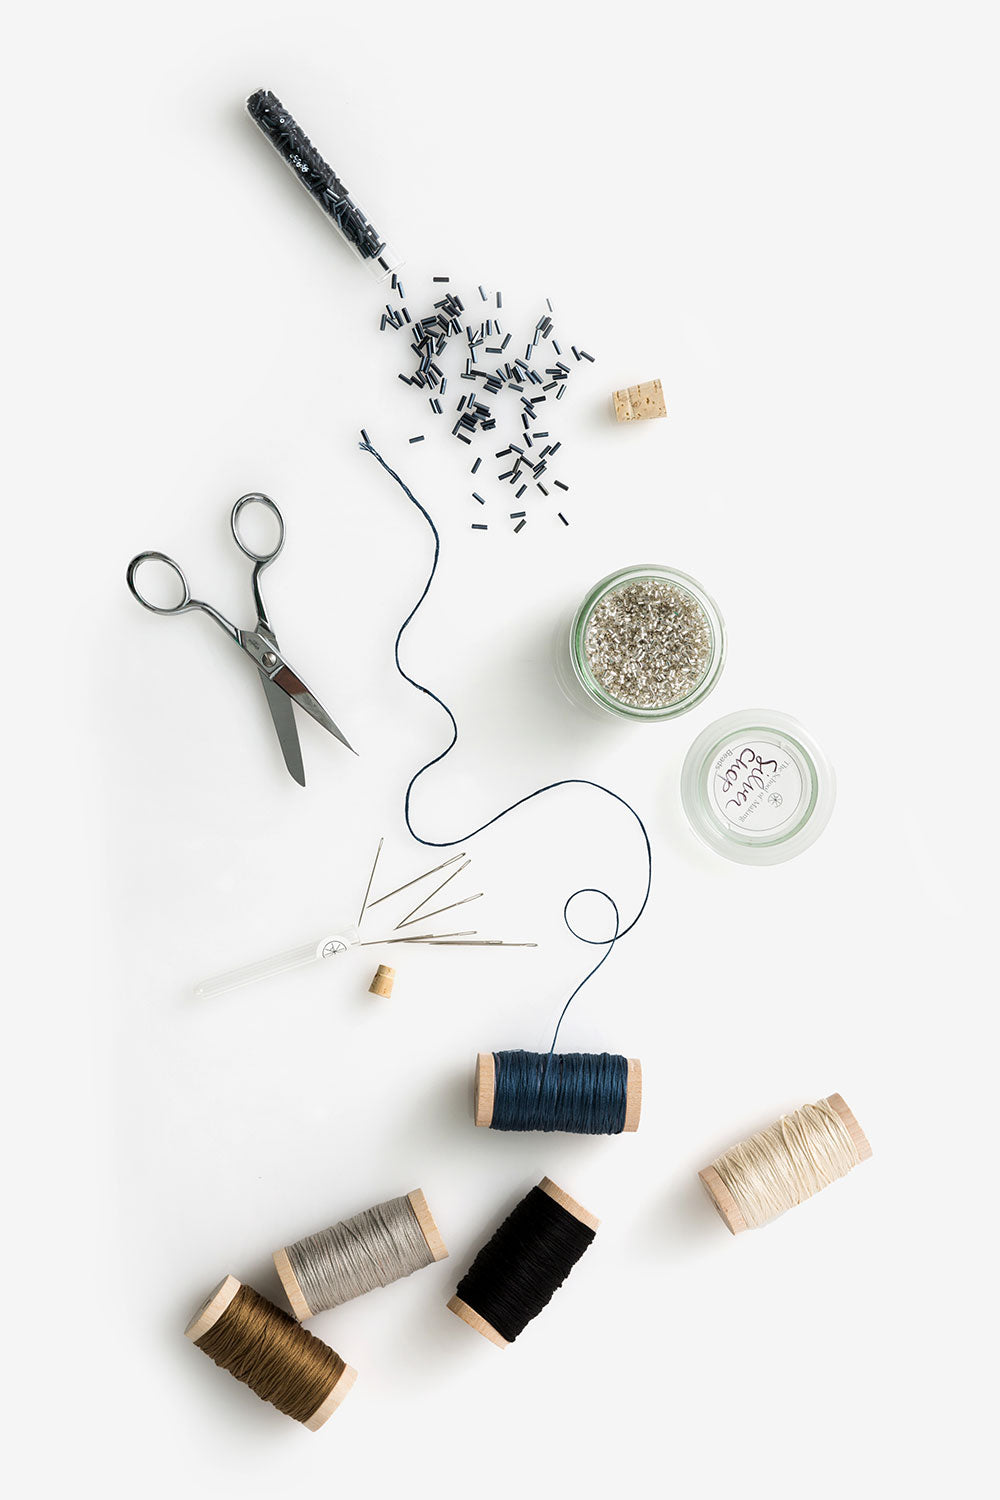 The School of Making Three Day Workshop Supplies Beads, Needles and Scissors